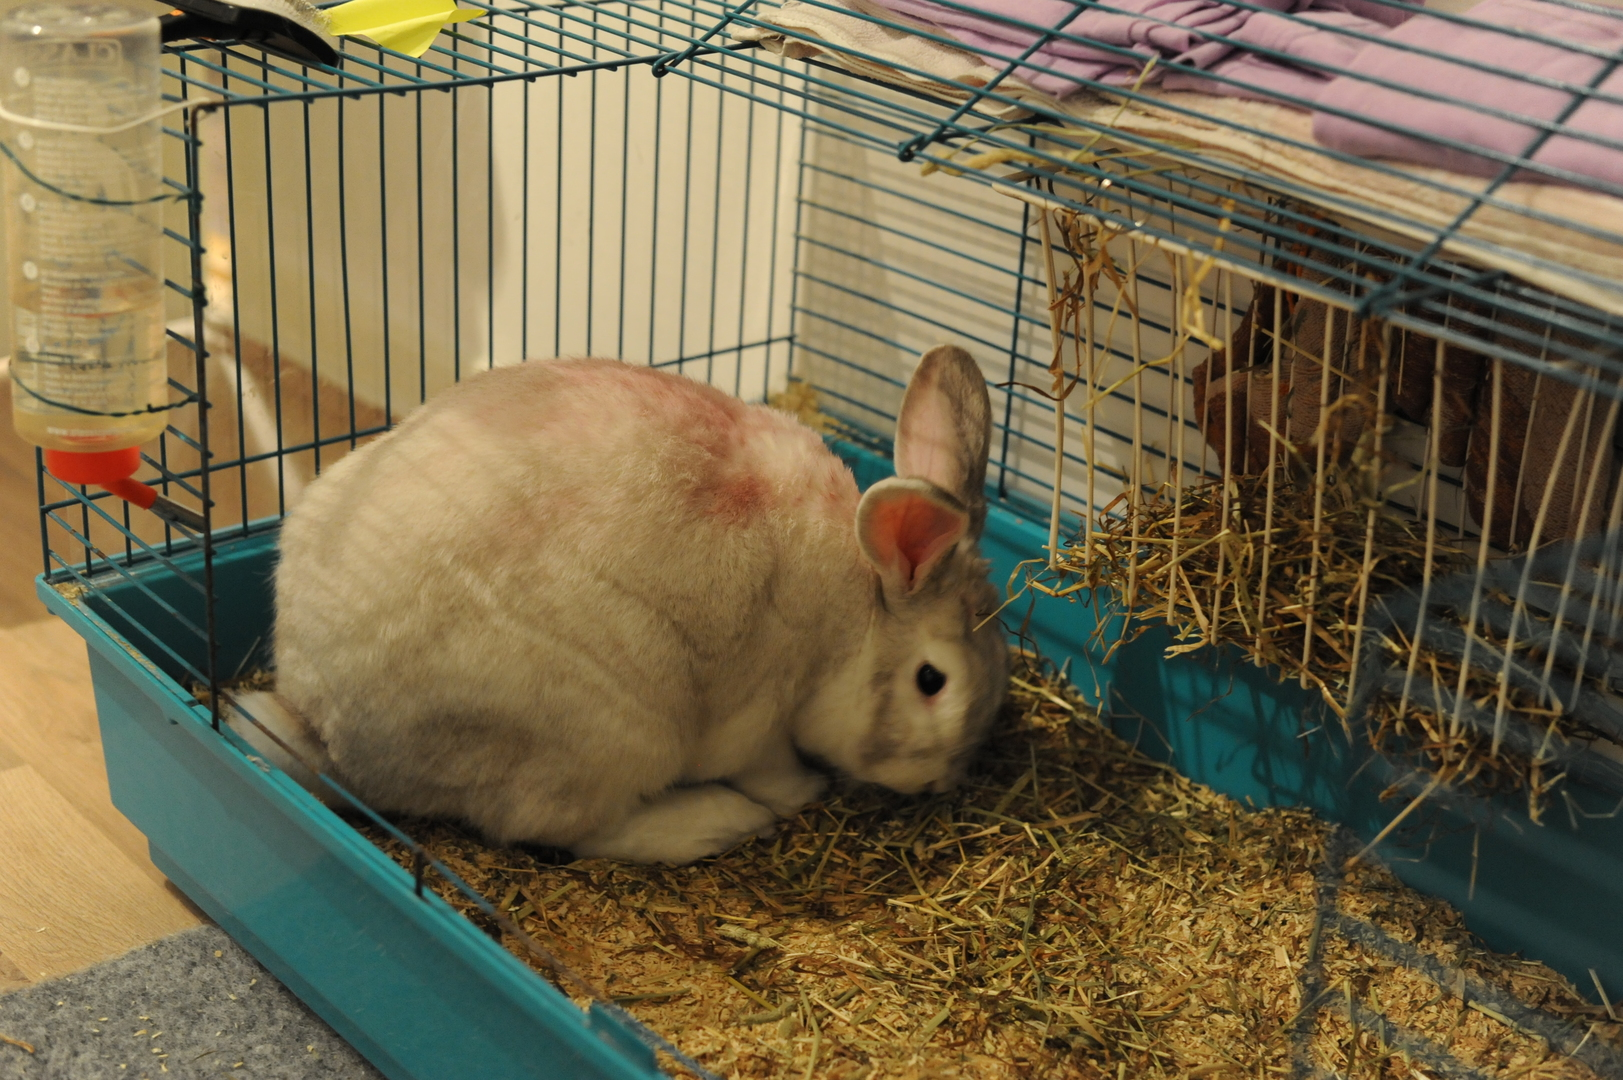 Beetroot-colored rabbit, picture 3